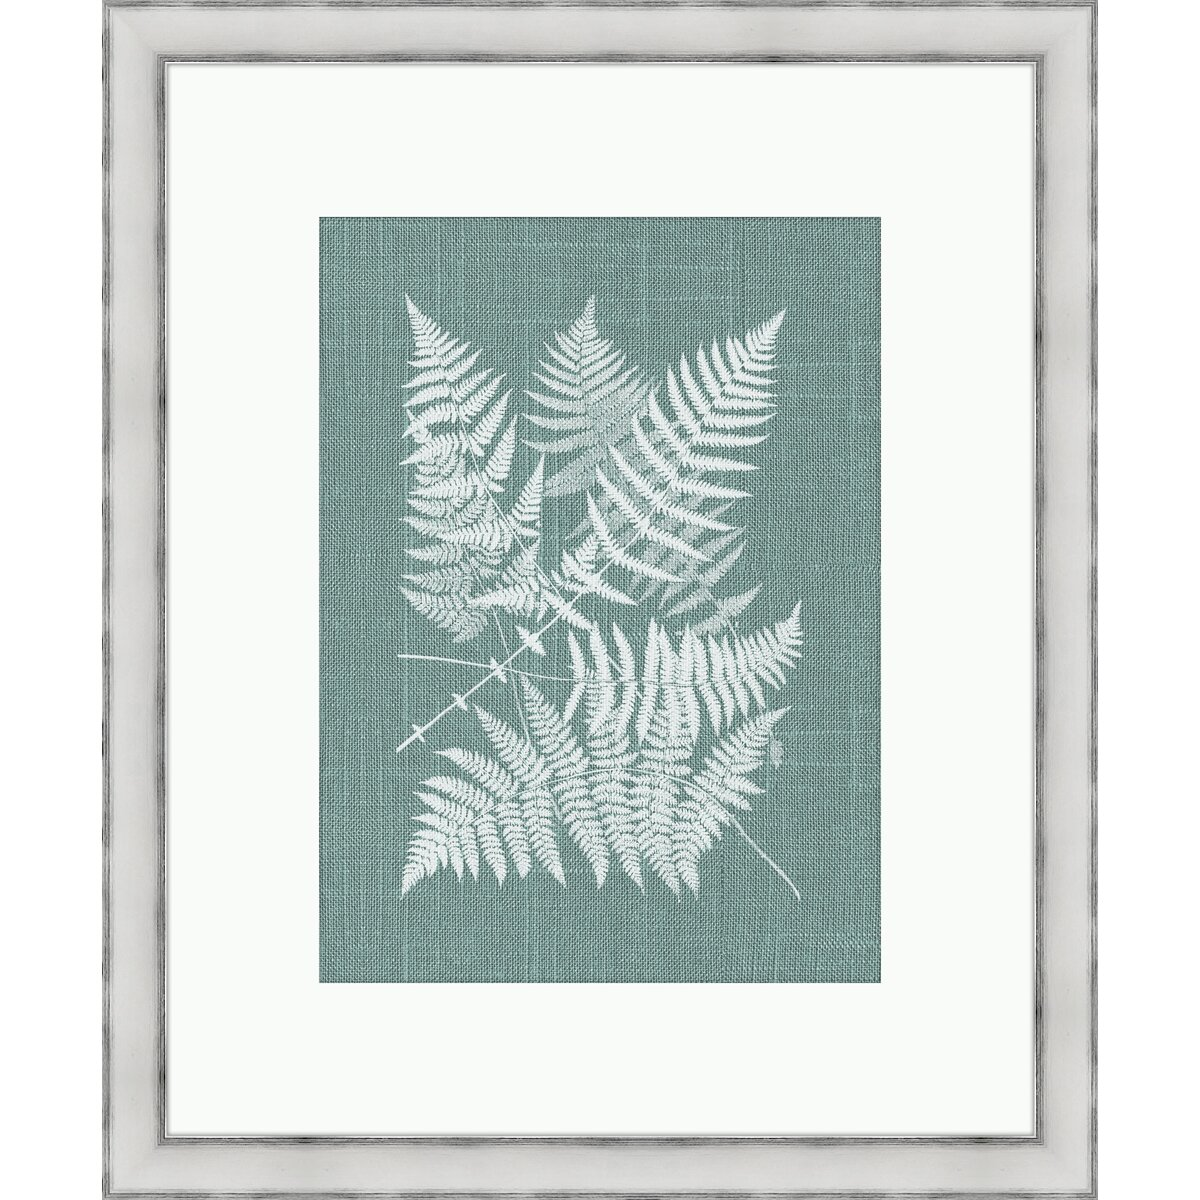 Fern Pictures Art Fern i Framed Graphic Art